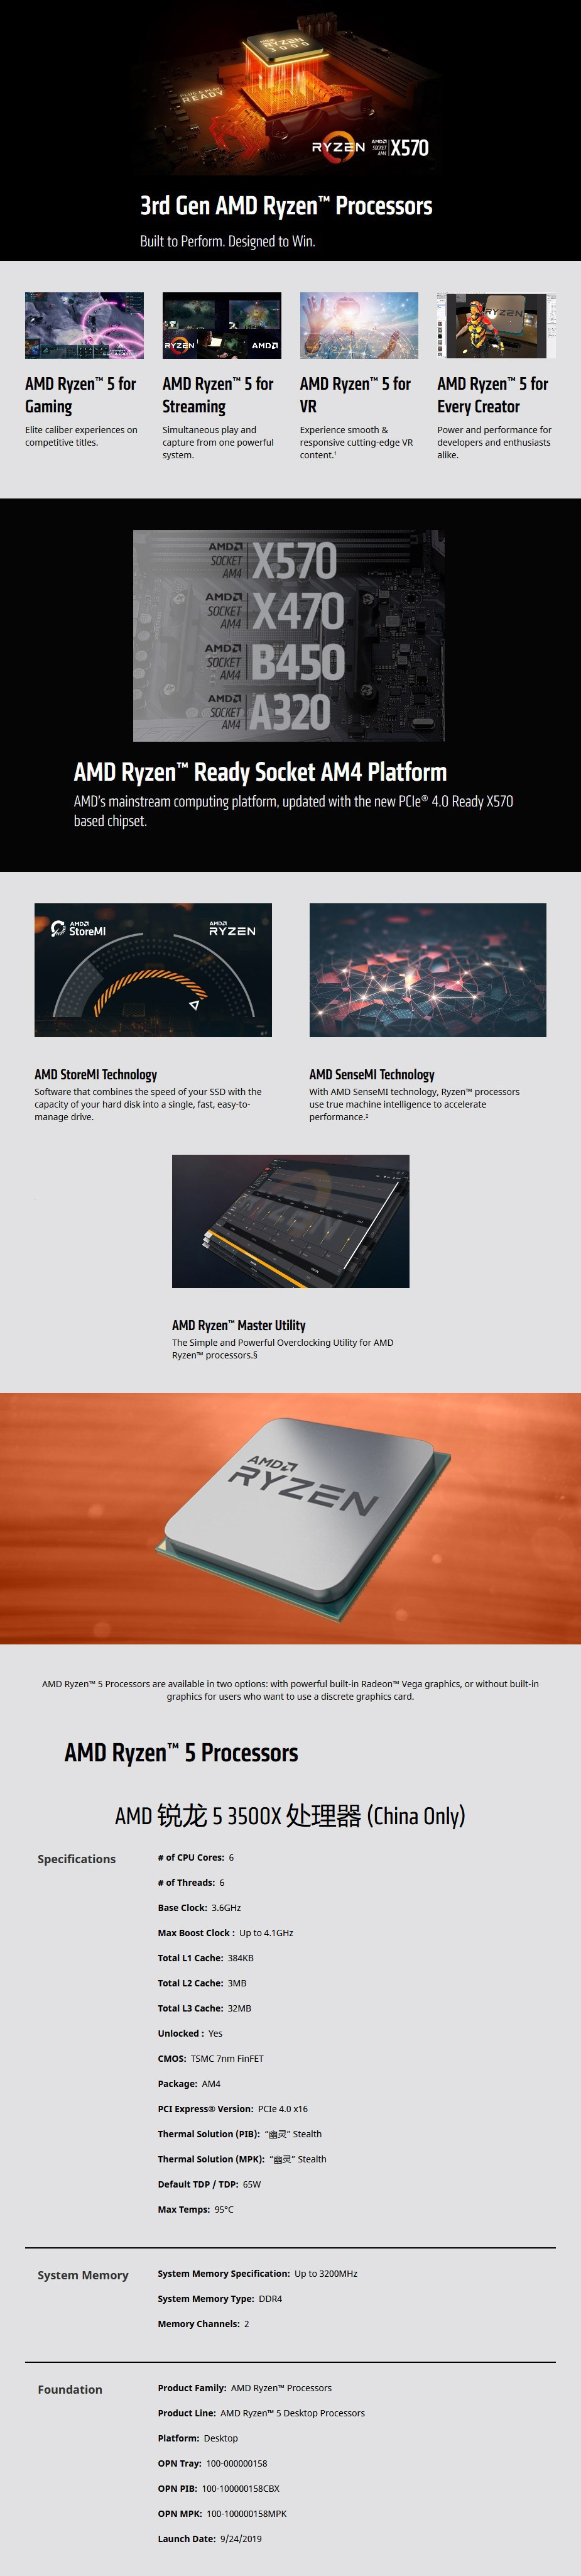 amd-ryzen-5-3500x-6core-am4-360-ghz-unlocked-cpu-processor-wraith-stealth-ac40514-1.jpg